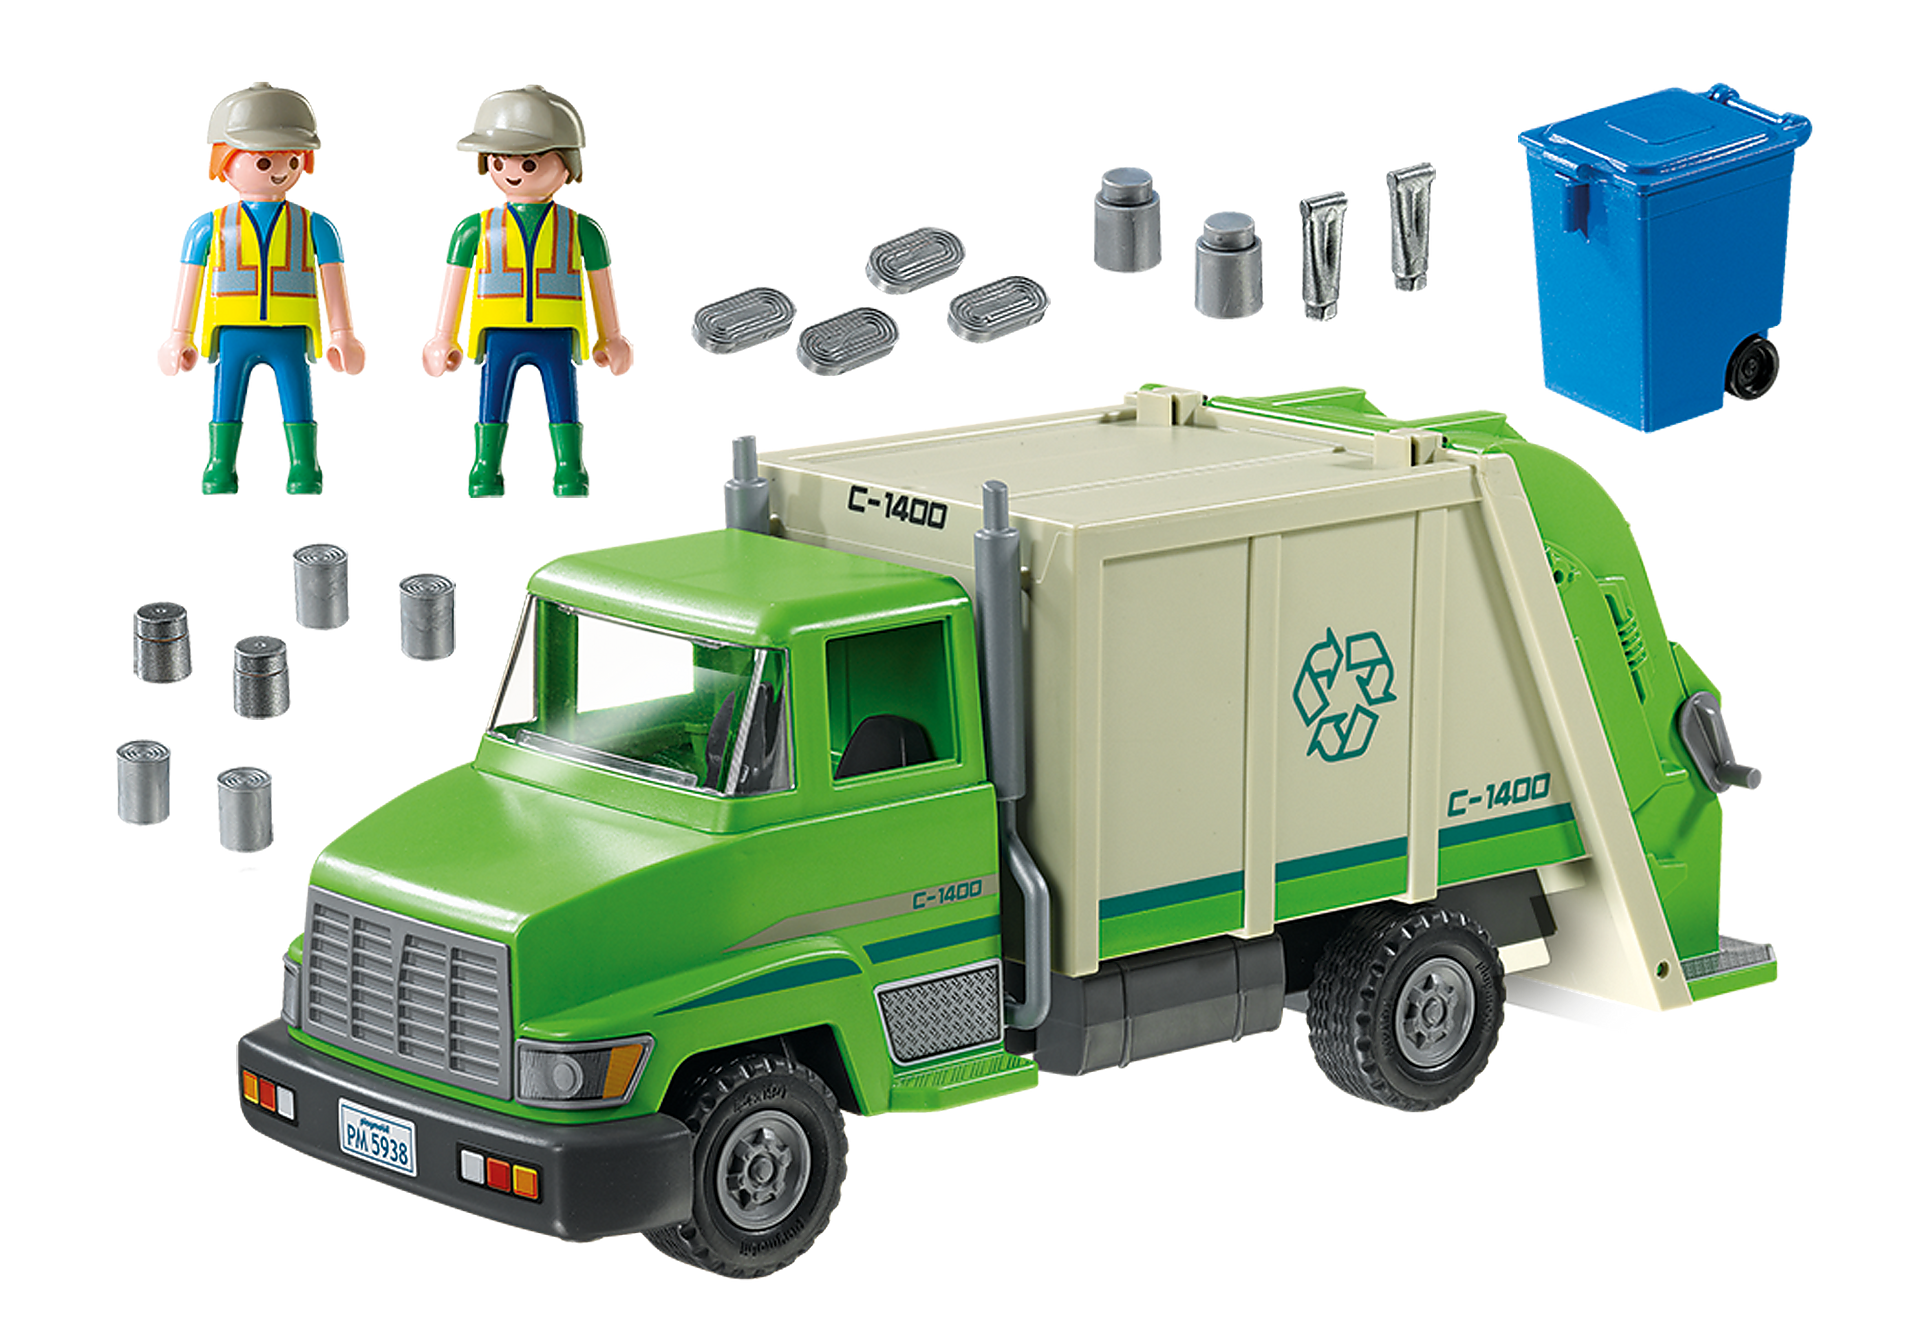 5679 Recycling Truck zoom image3